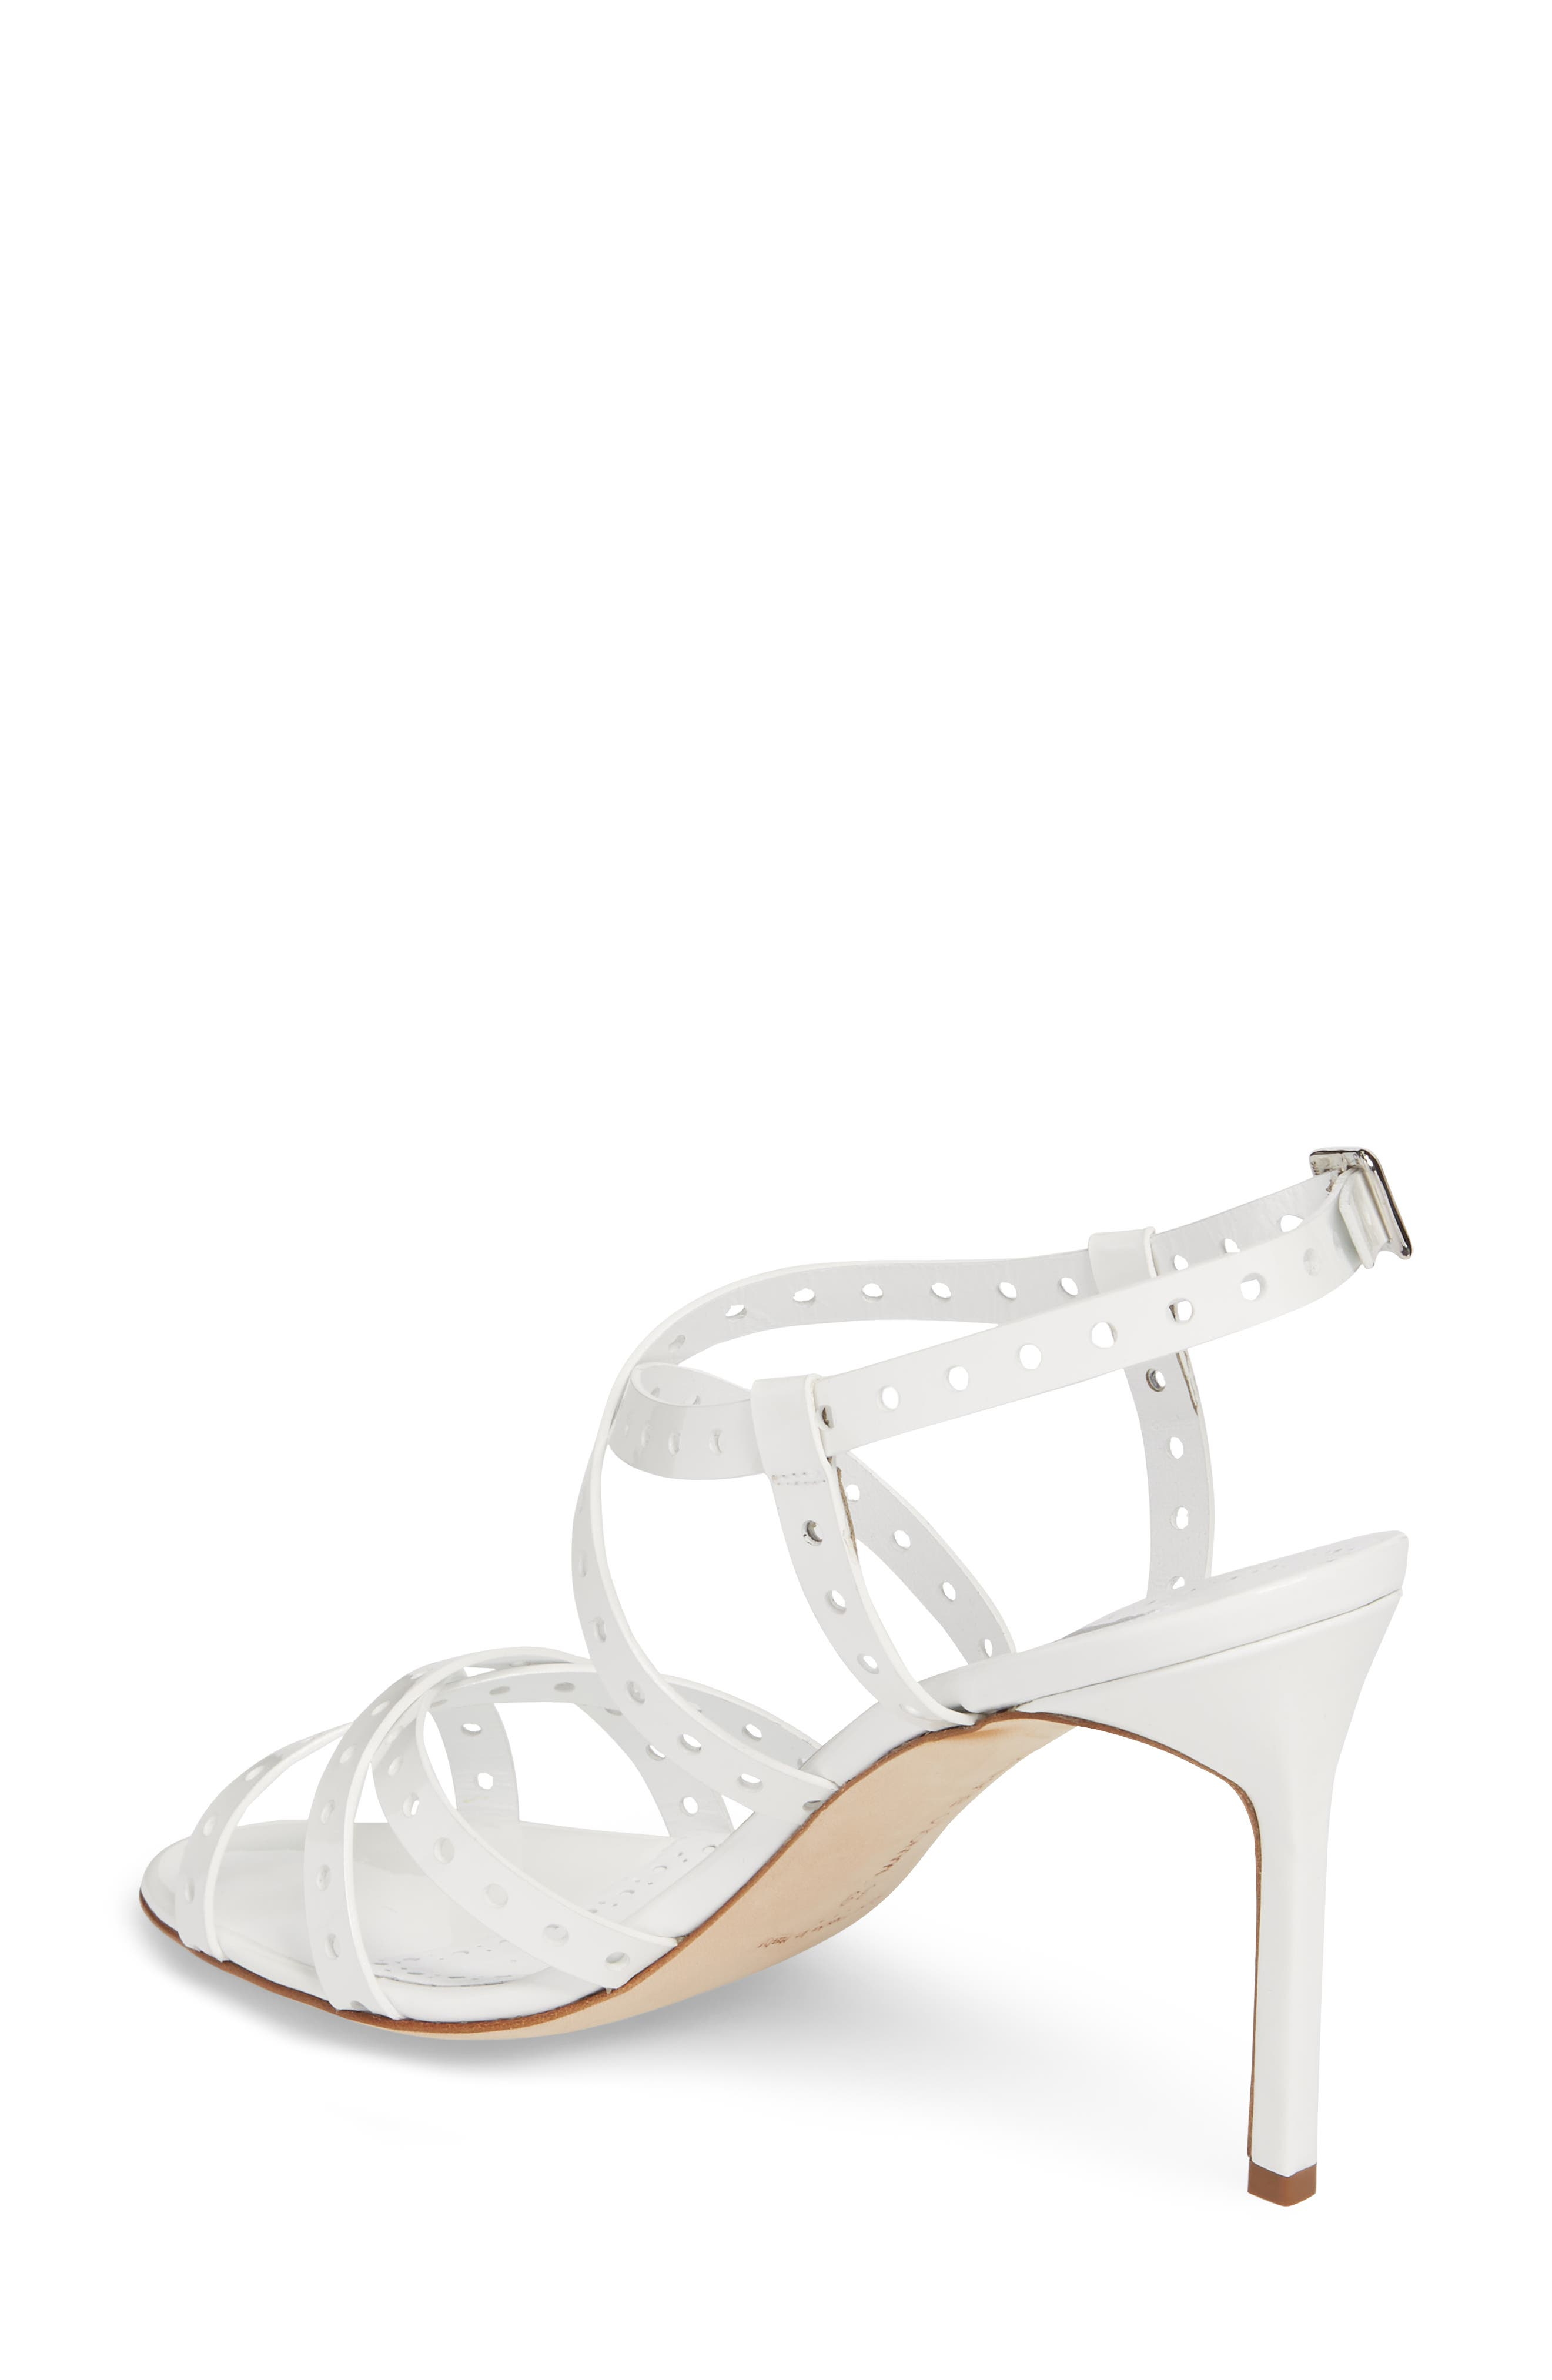 Demure Perforated Strappy Sandal,                             Alternate thumbnail 2, color,                             100